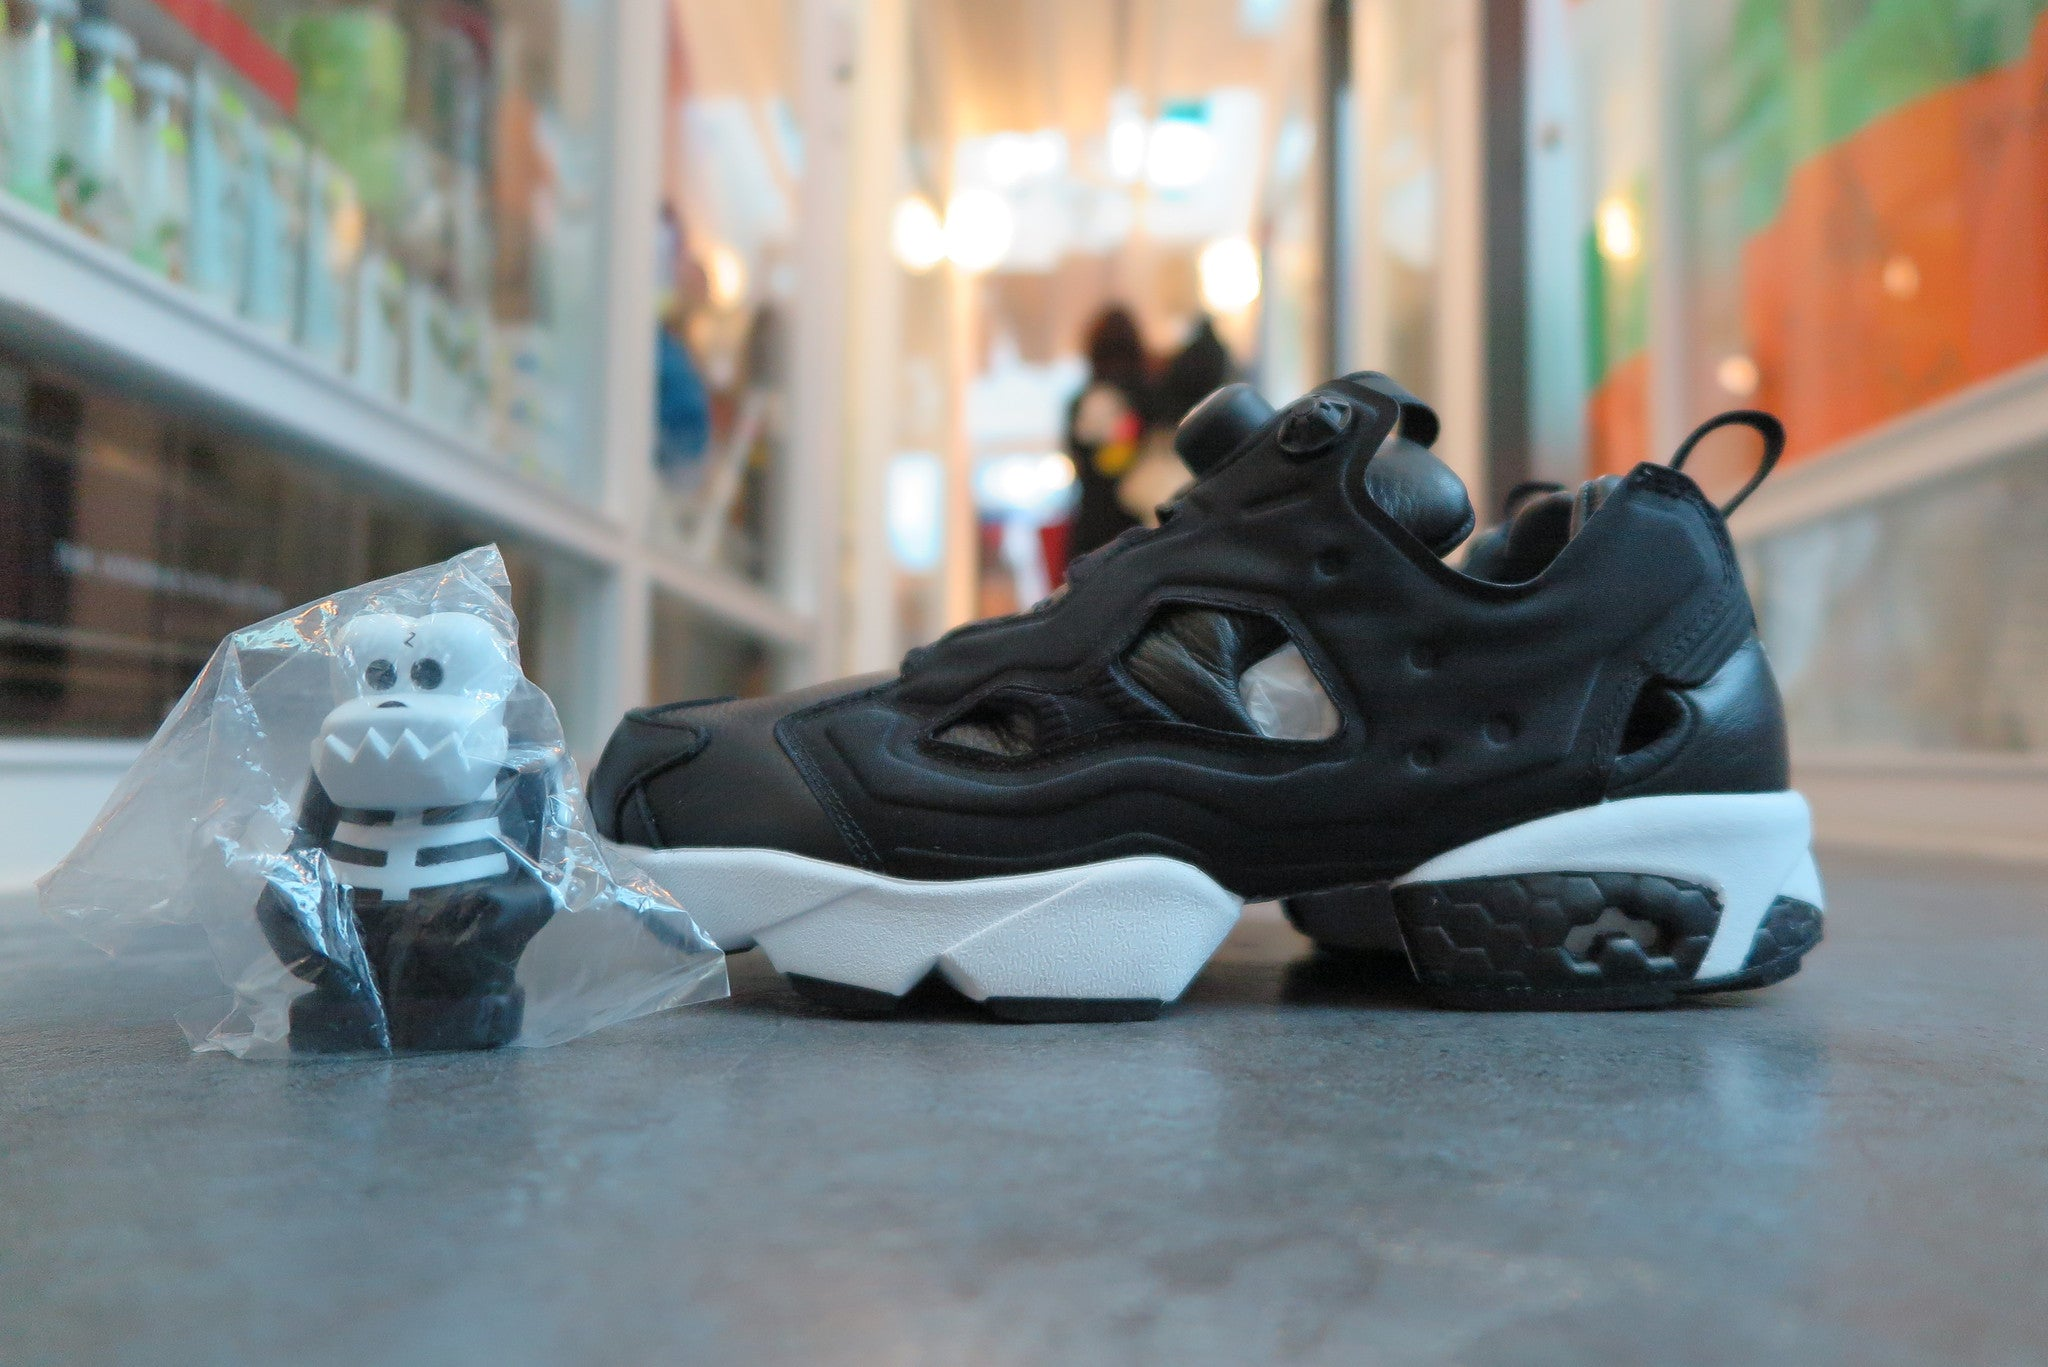 Bounty Hunter x Packer Shoes x ATMOS X Reebok Instapump Fury Affiliates - Black/White #AR1991-Sneakers-Navy Selected Shop